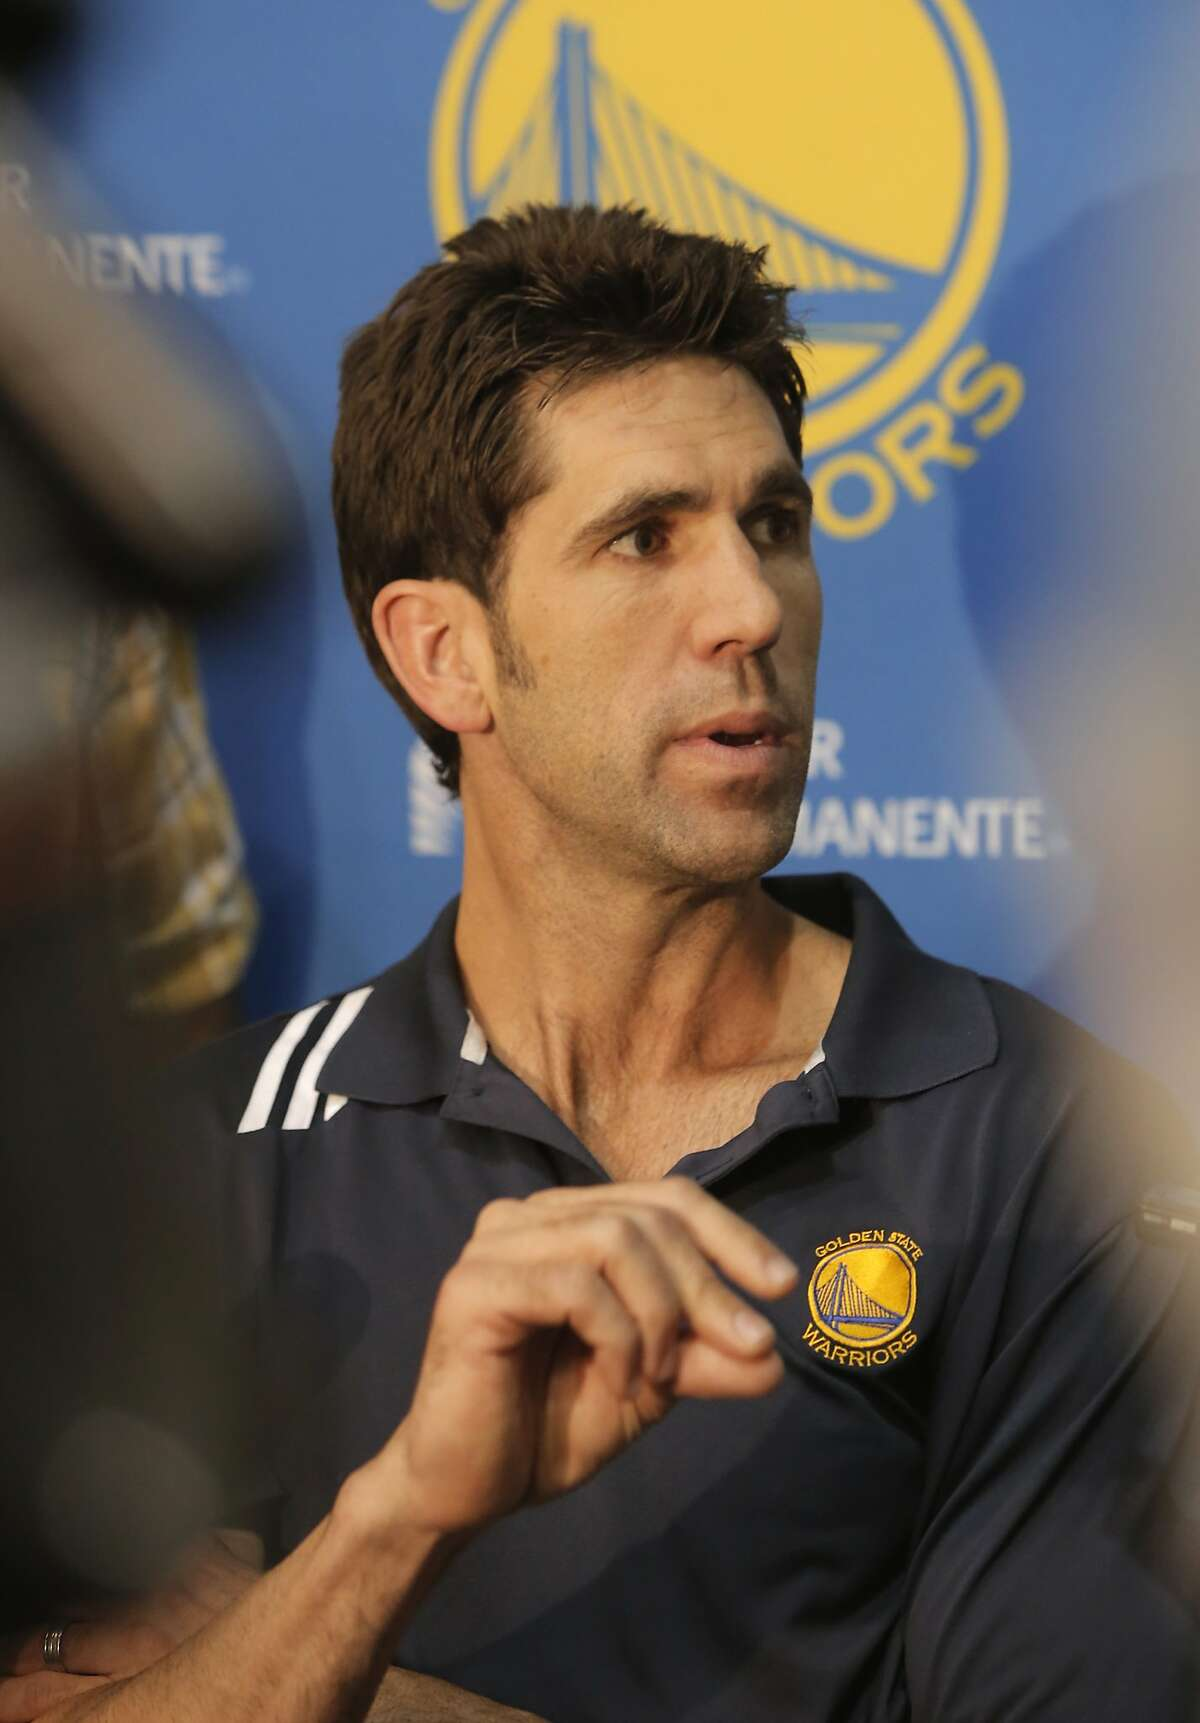 Golden State Warriors' general manager Bob Myers speaks to the media during the final press conference of the season at their practice facility in Oakland, Calif. on Thurs. June 18, 2015.